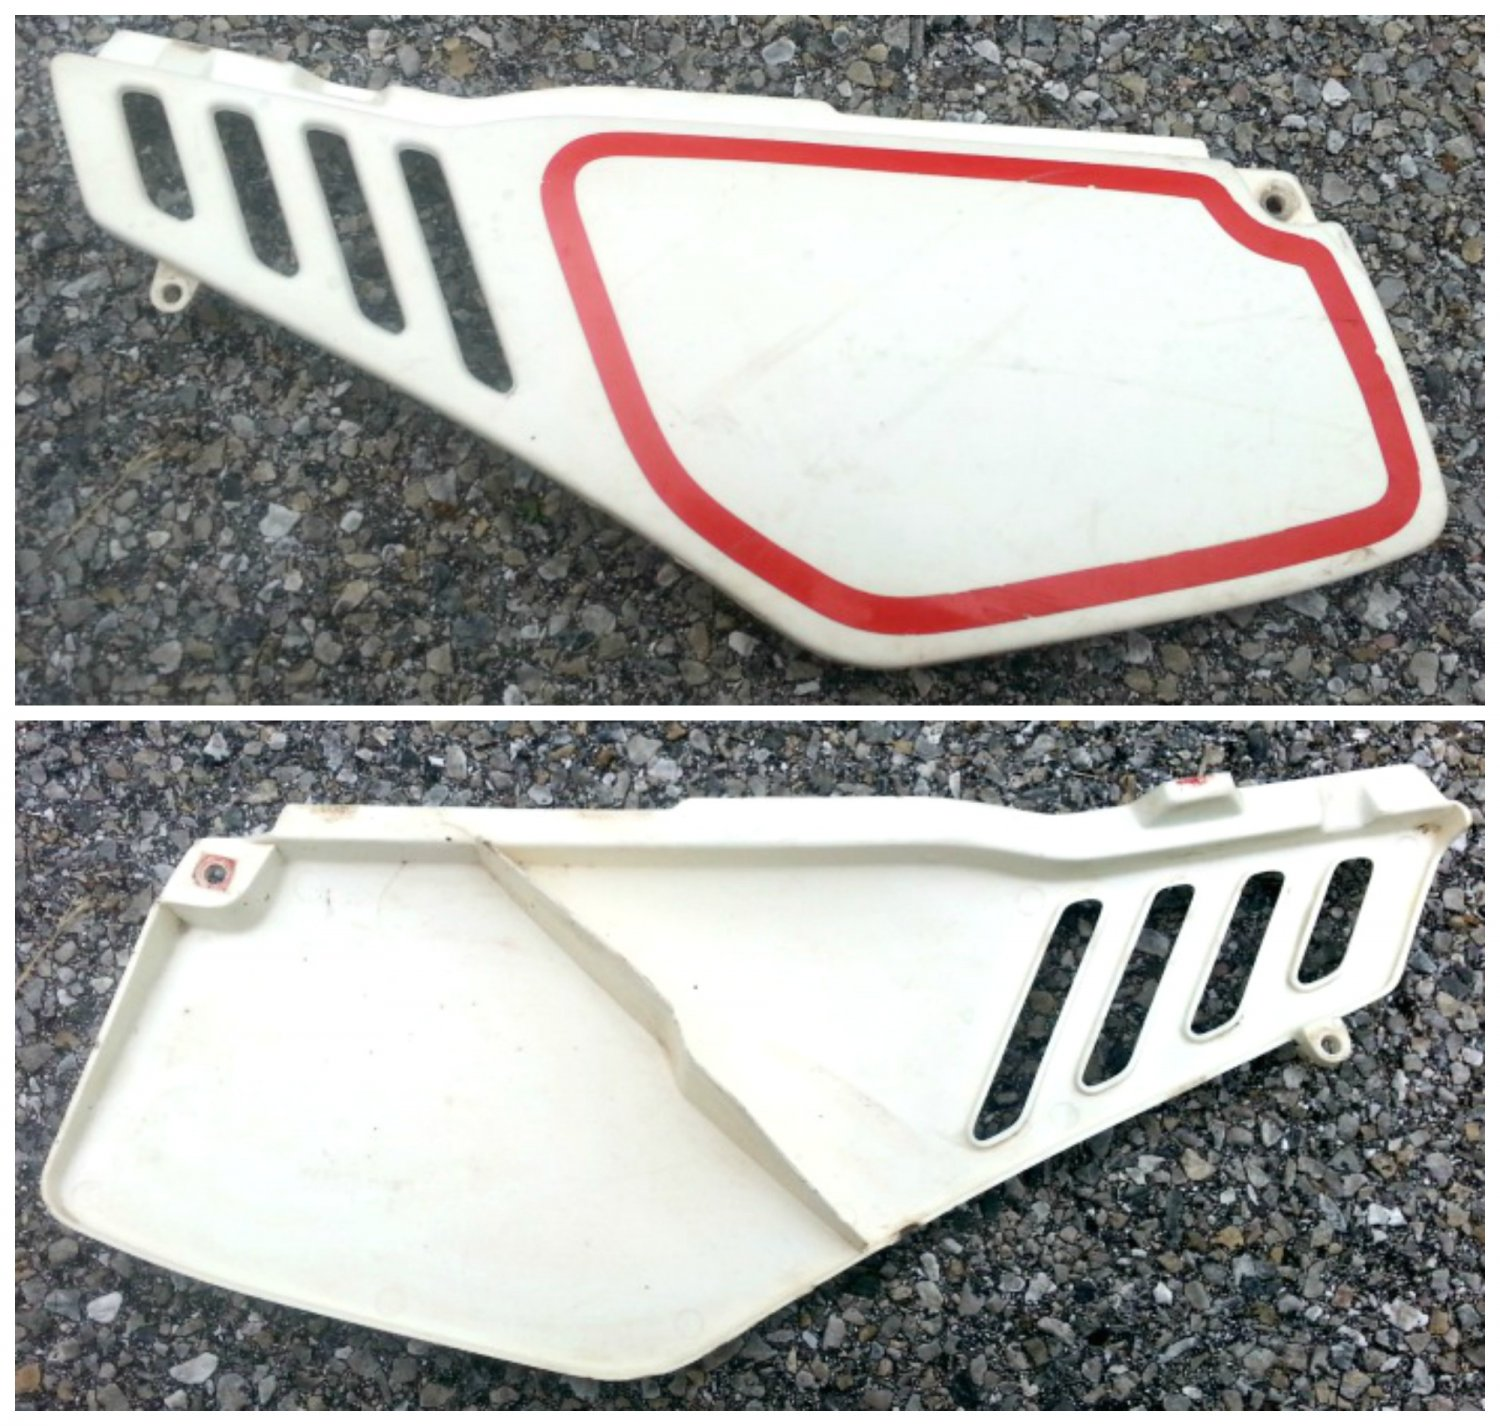 1987 Yamaha TT225 Left Side Plastic